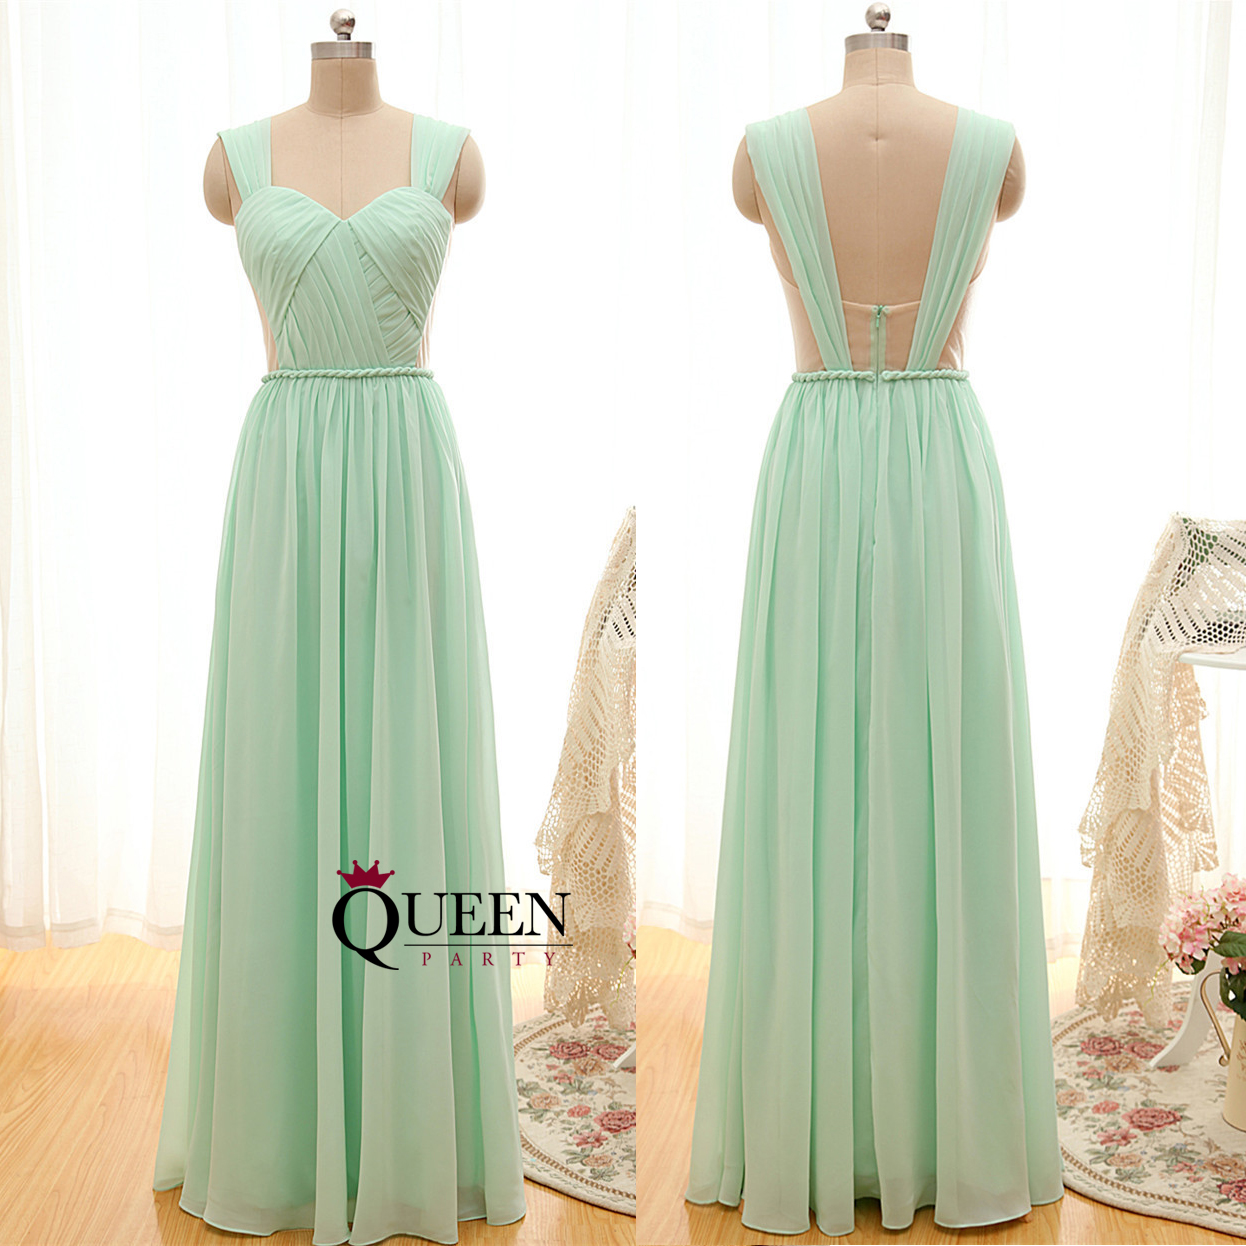 Mint chiffon strap sweetheart rope waistband ruffles bridesmaid mint chiffon strap sweetheart rope waistband ruffles bridesmaid dress floor length long prom dress ombrellifo Image collections